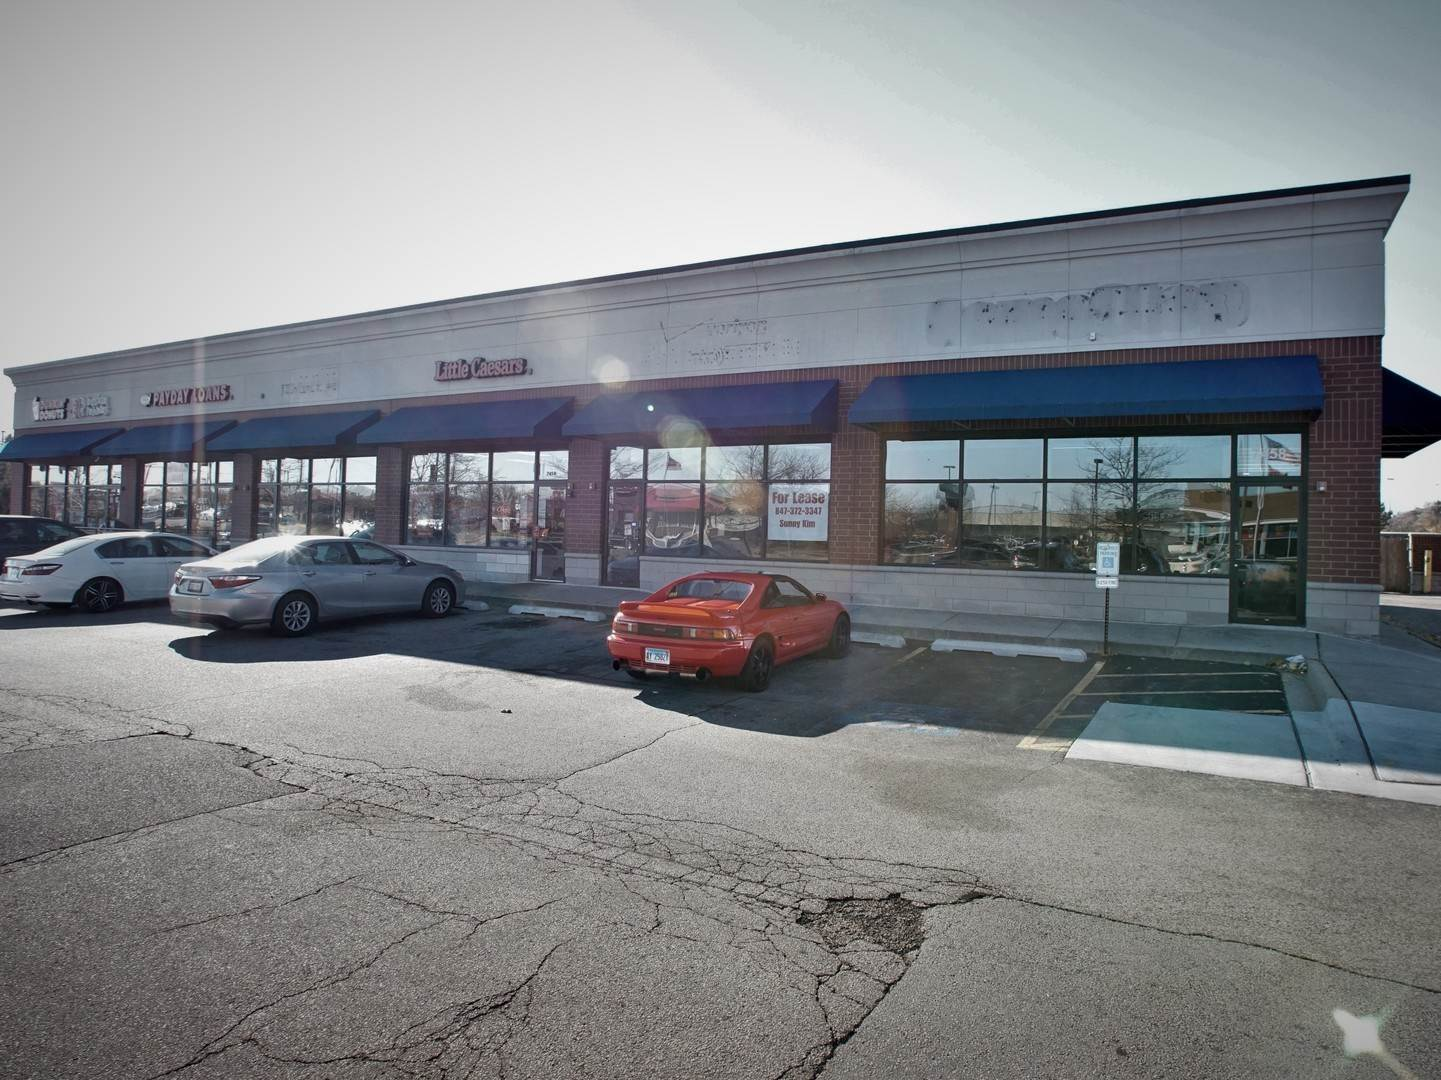 Commerciale alle 7458 Barrington Road Hanover Park, Illinois 60133 Stati Uniti